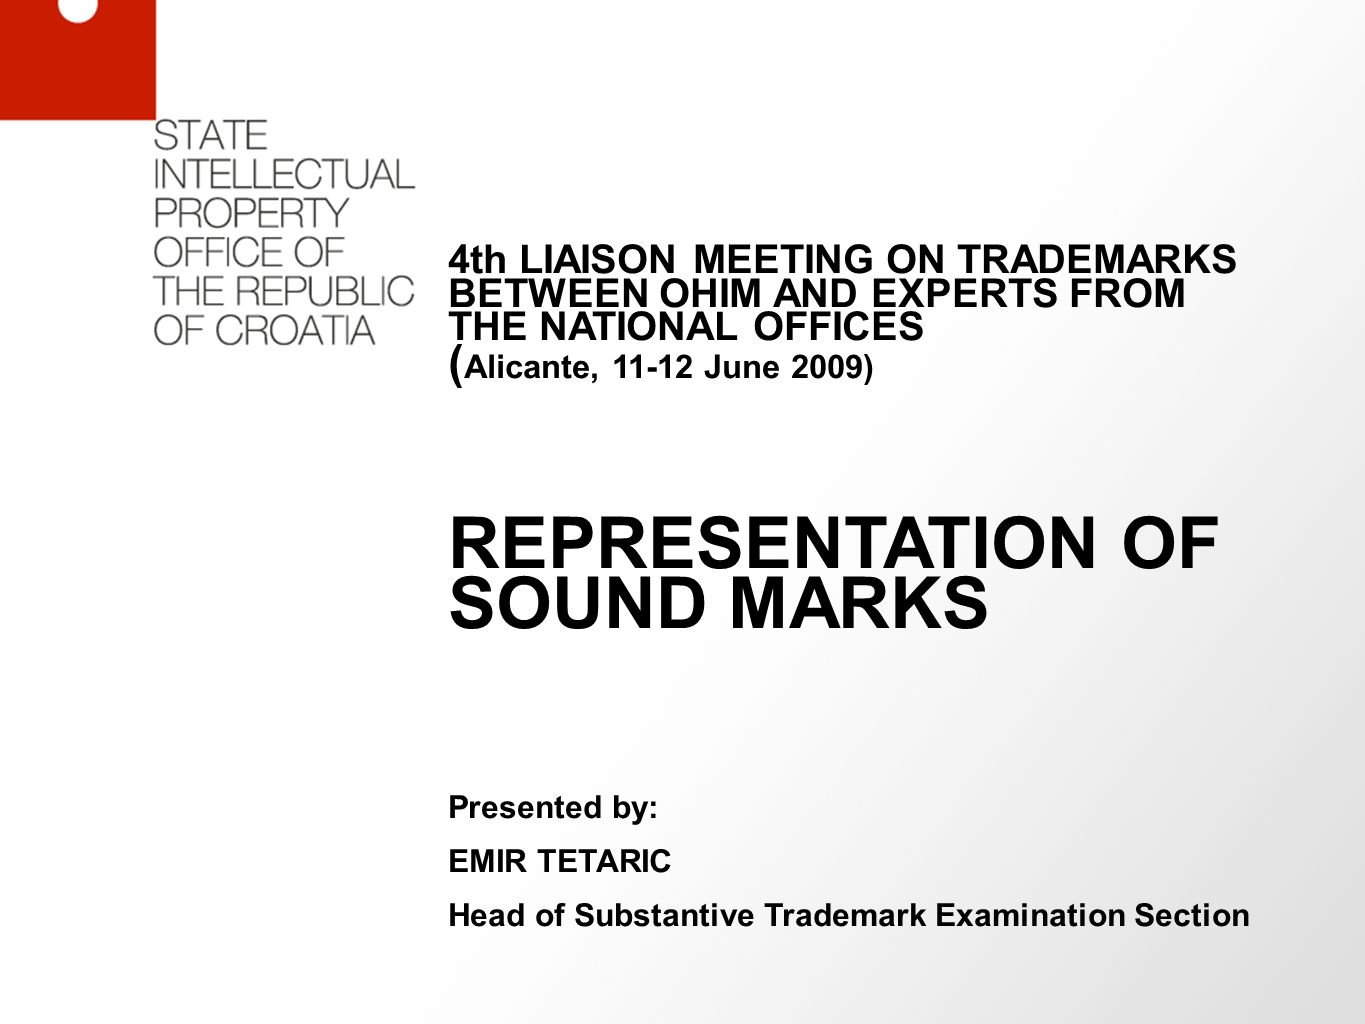 4th LIAISON MEETING ON TRADEMARKS BETWEEN OHIM AND EXPERTS FROM THE NATIONAL OFFICES ( Alicante, June 2009) REPRESENTATION OF SOUND MARKS Presented by: EMIR TETARIC Head of Substantive Trademark Examination Section